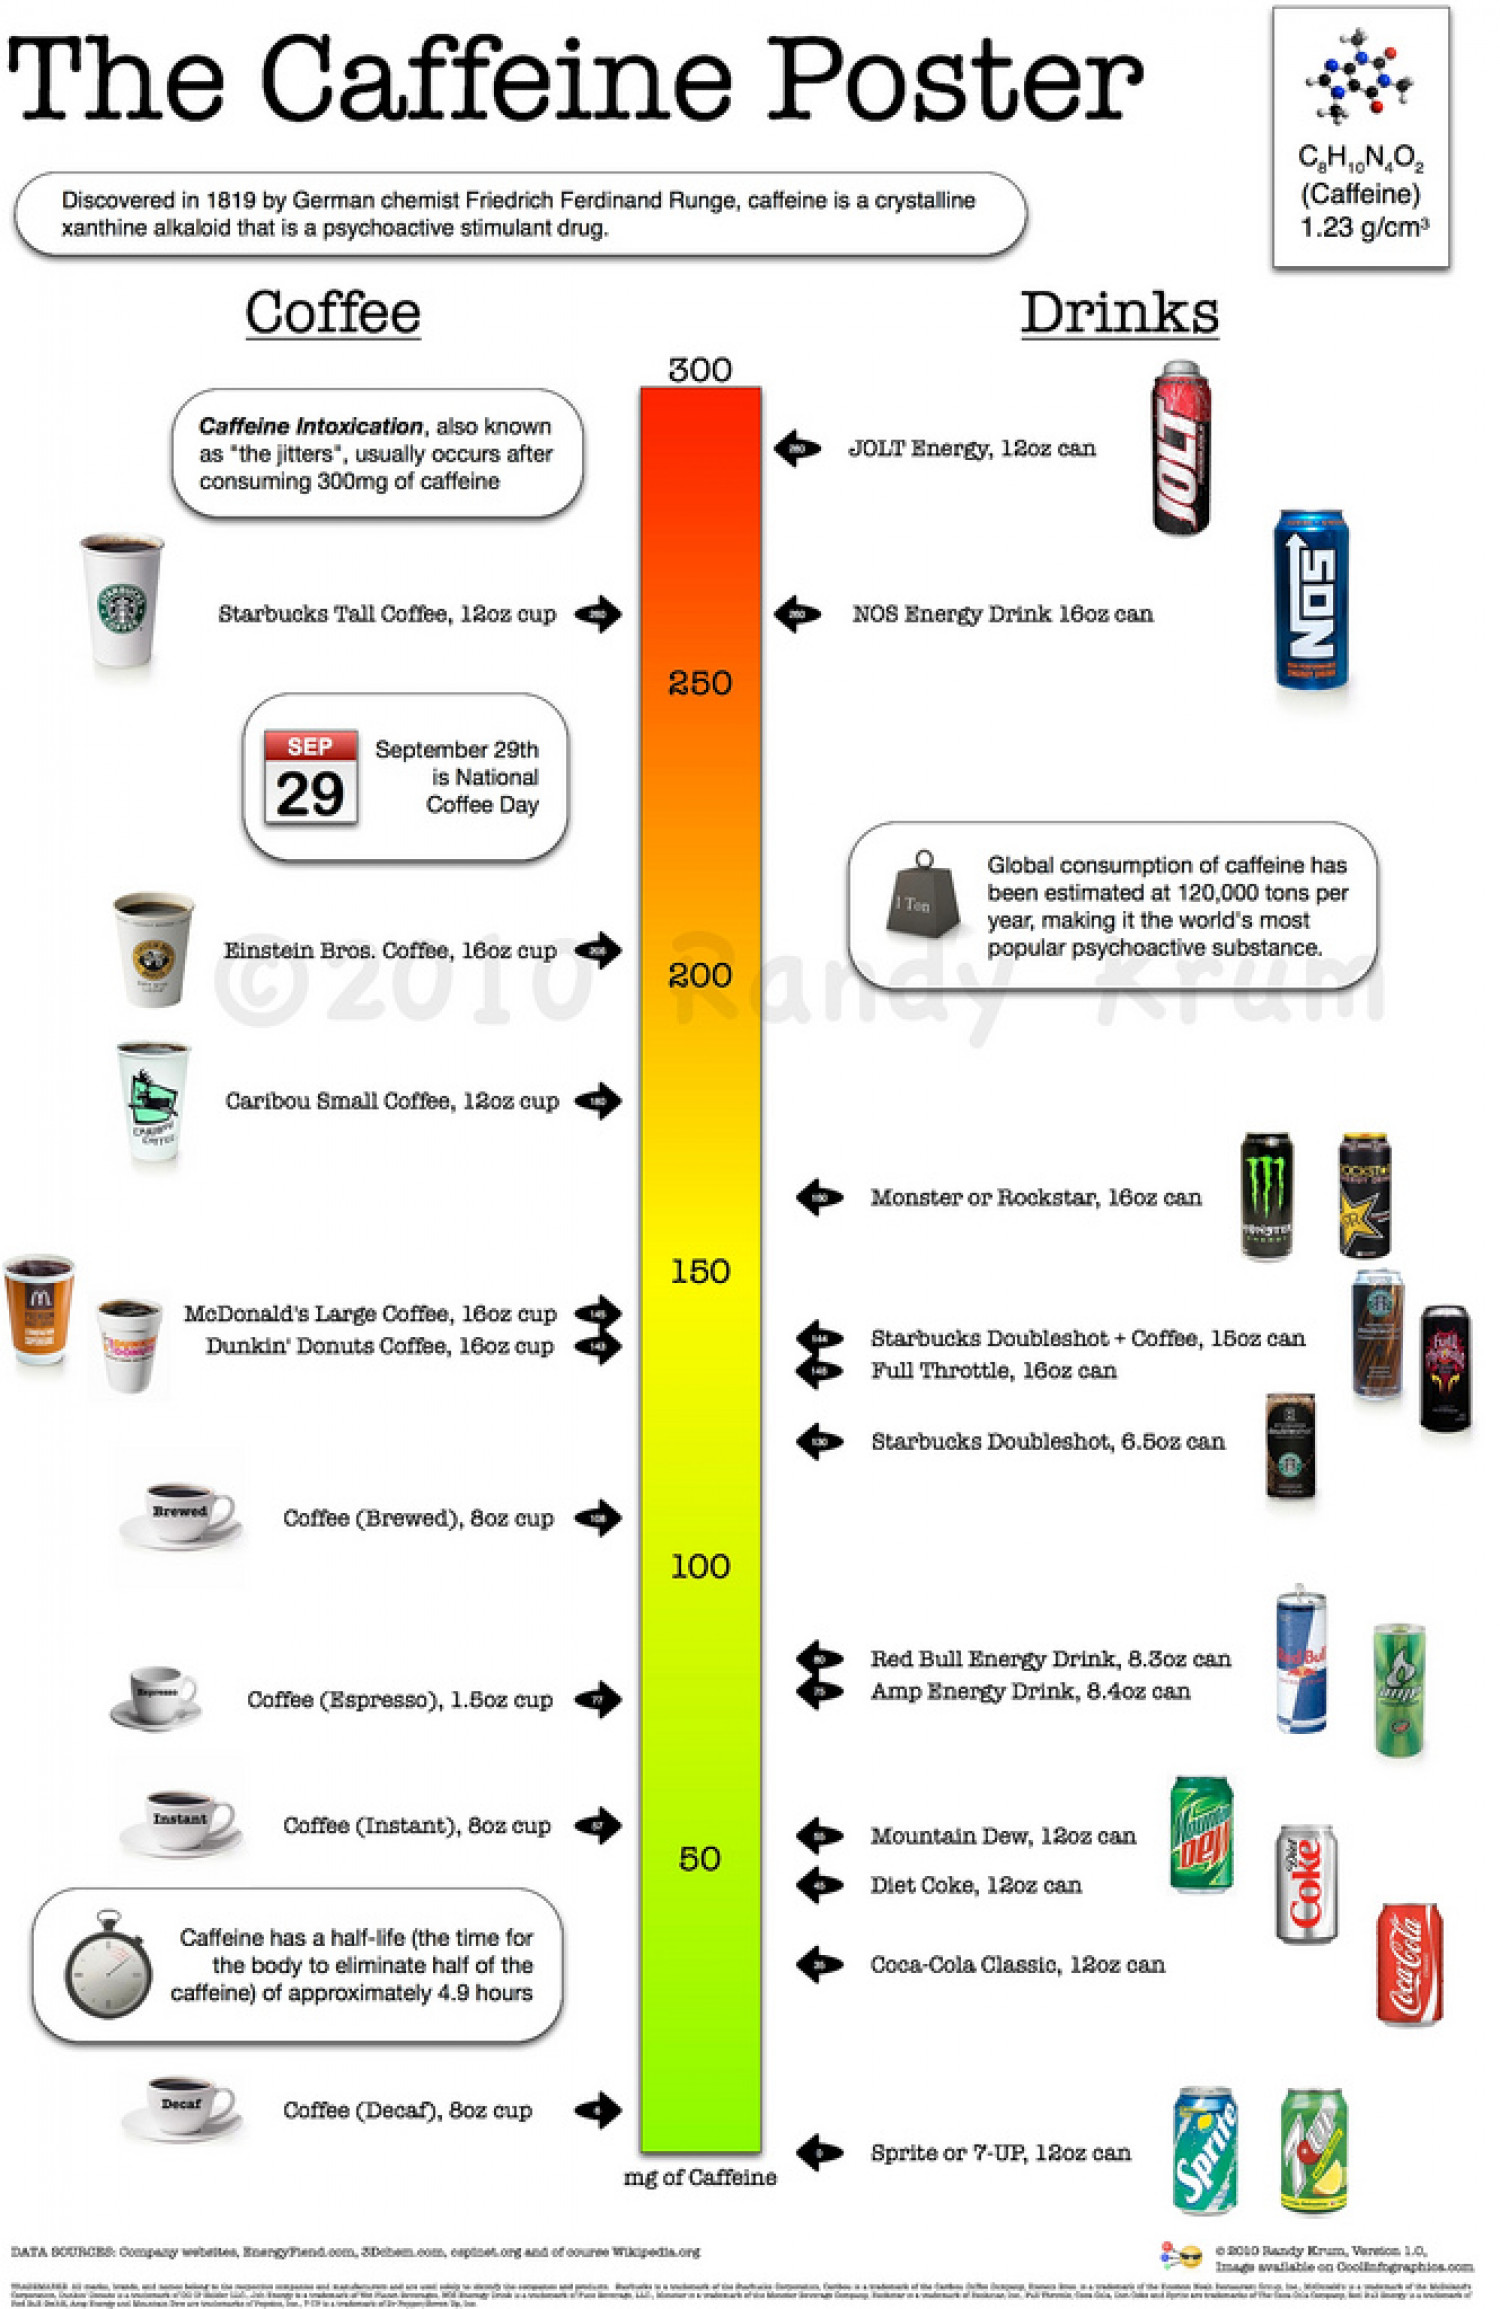 The Caffeine Poster, How Much Caffeine Are You Drinking? Infographic